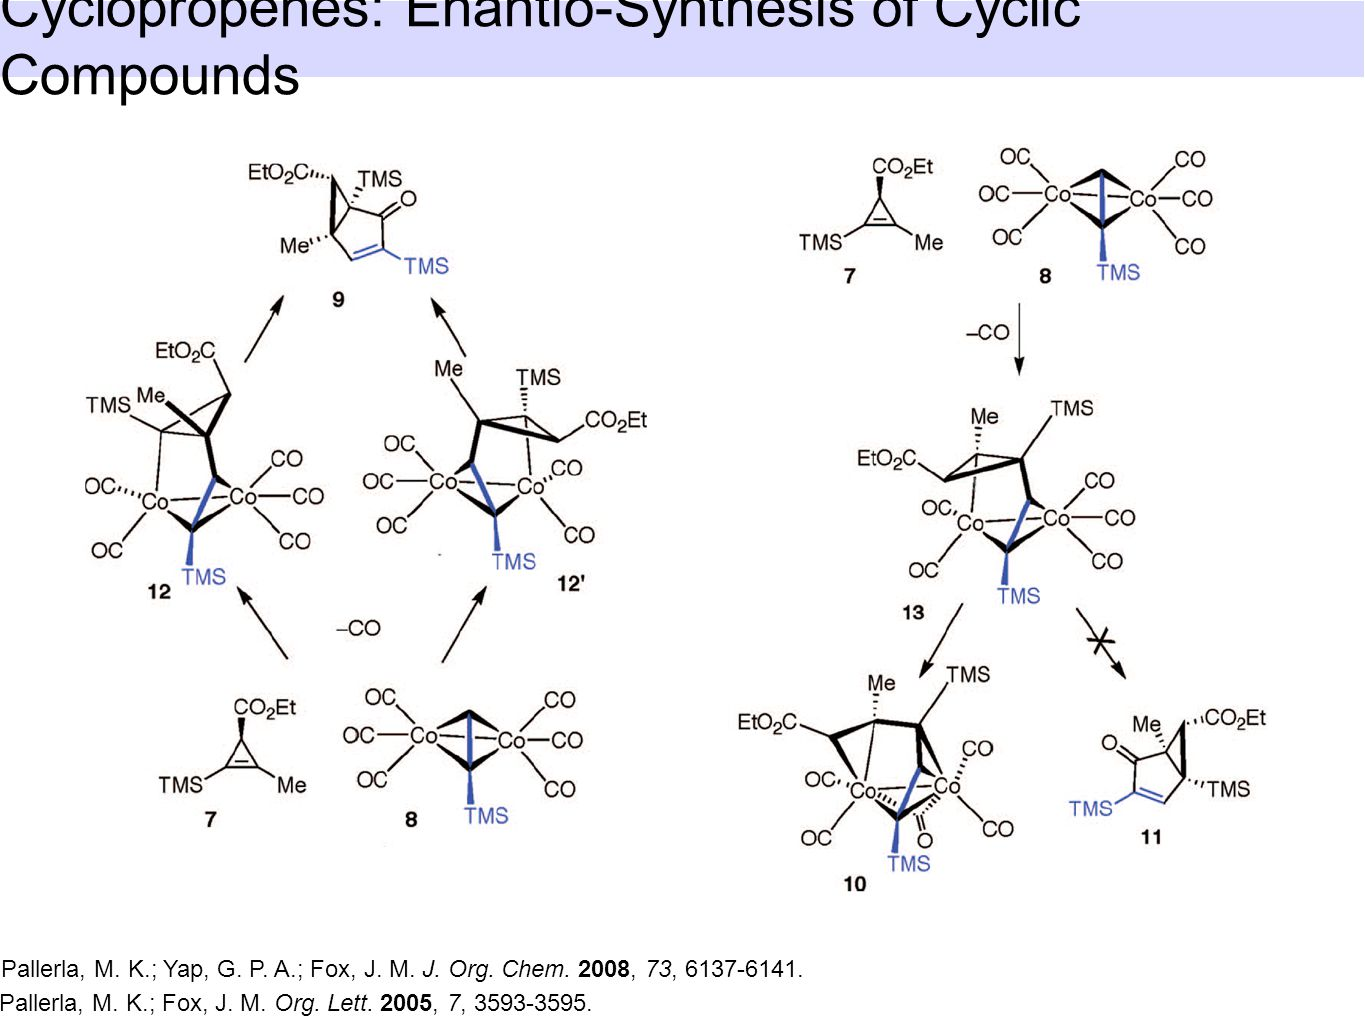 Cyclopropenes: Enantio-Synthesis of Cyclic Compounds Pallerla, M.